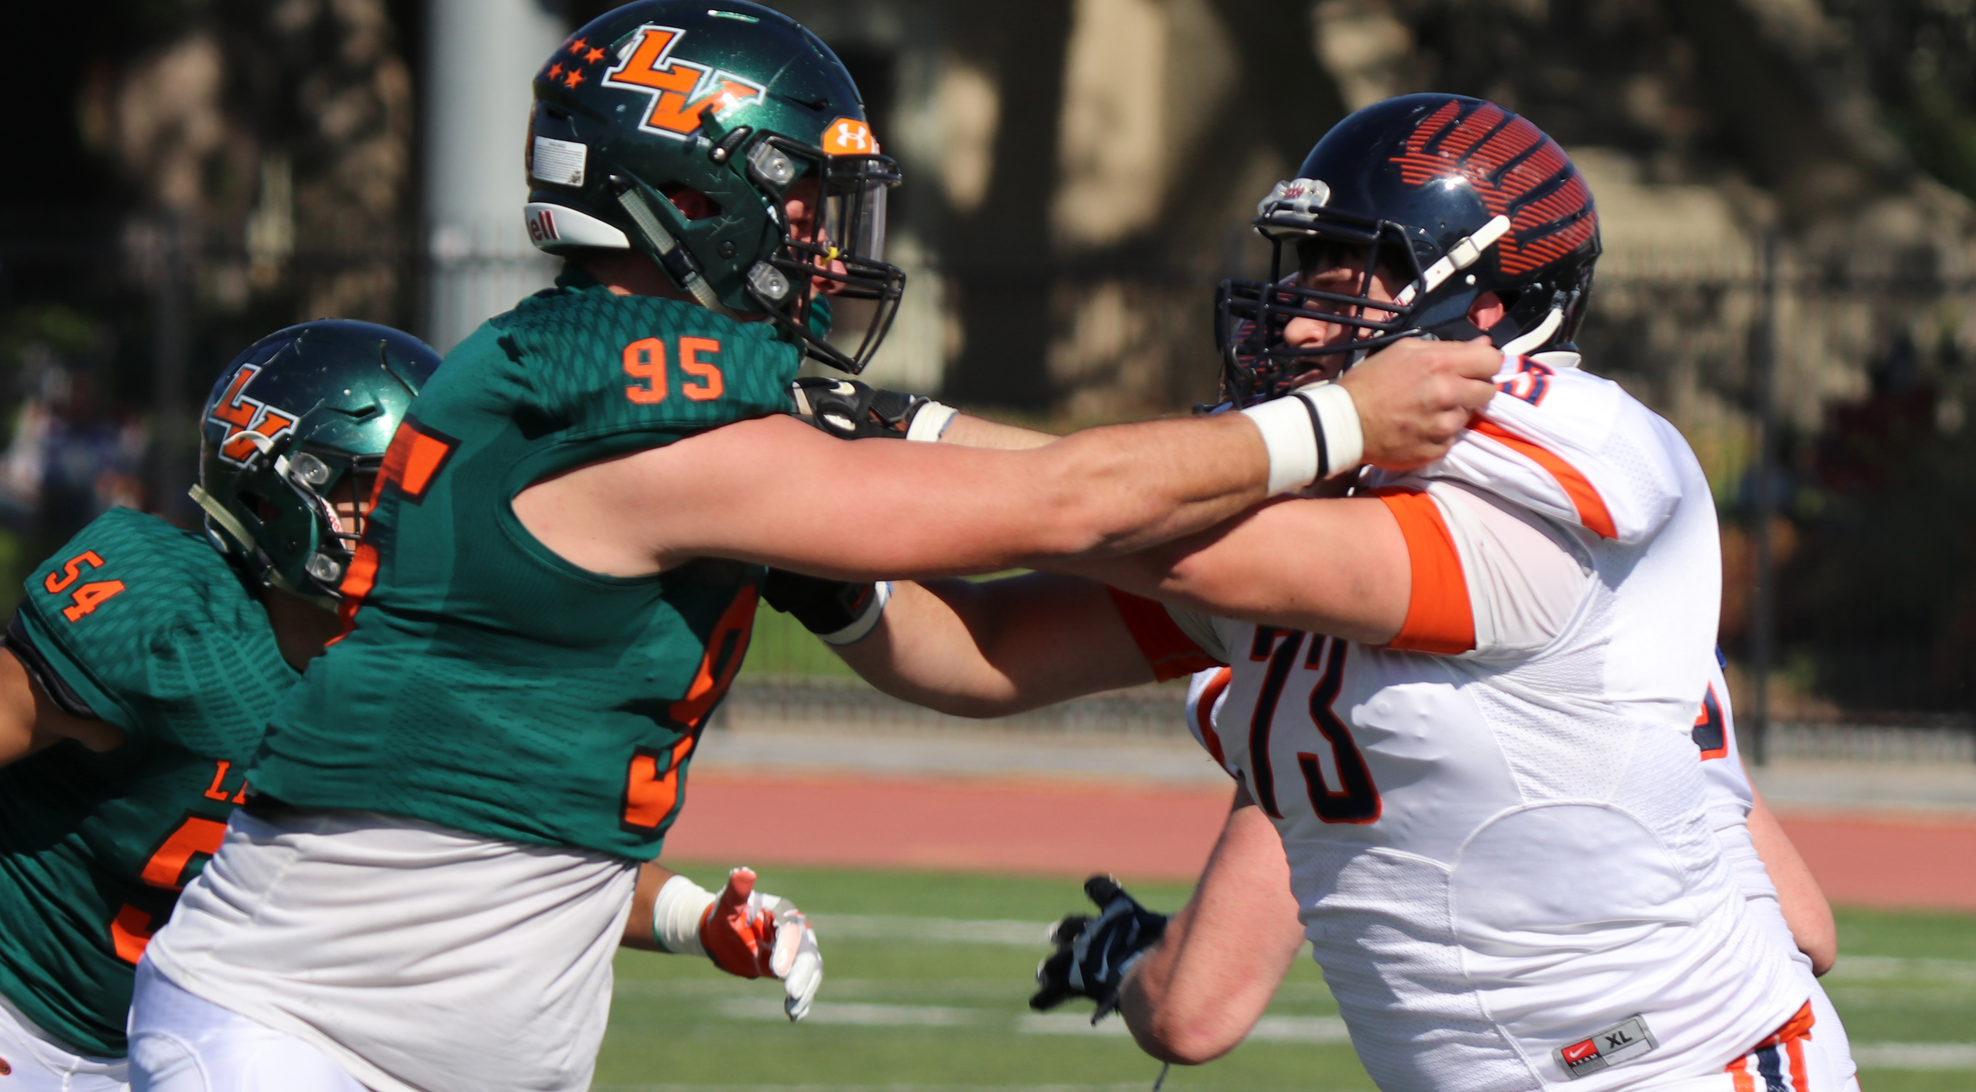 Football drops to Pomona-Pitzer, 21-20